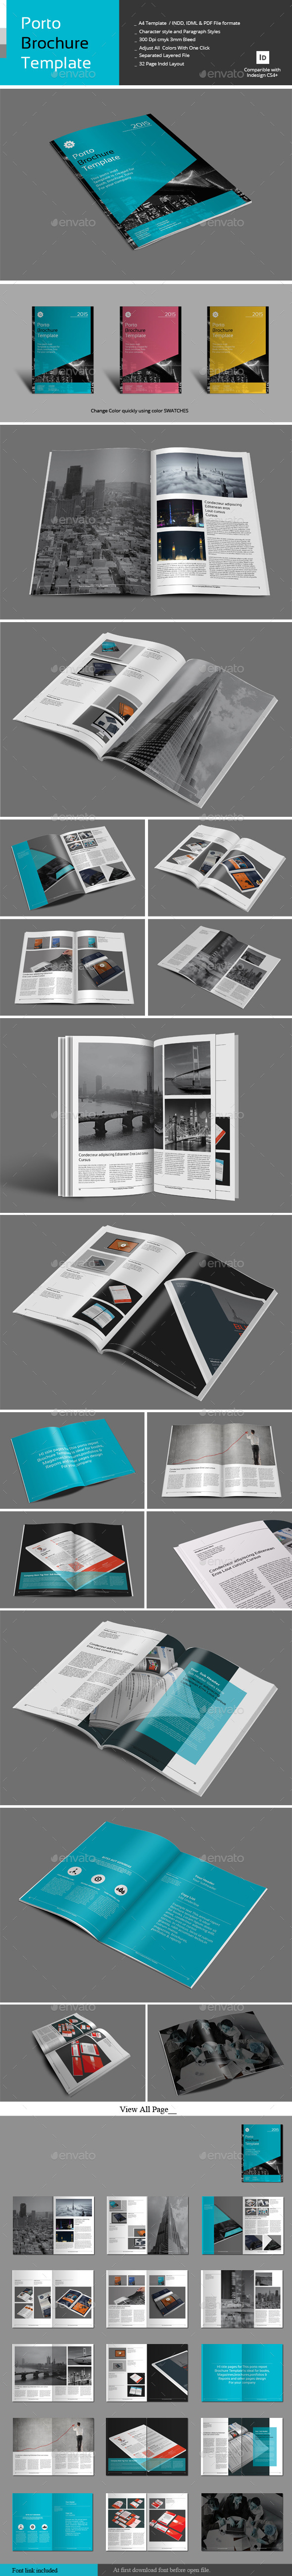 GraphicRiver Porto Brochure Template 10395566